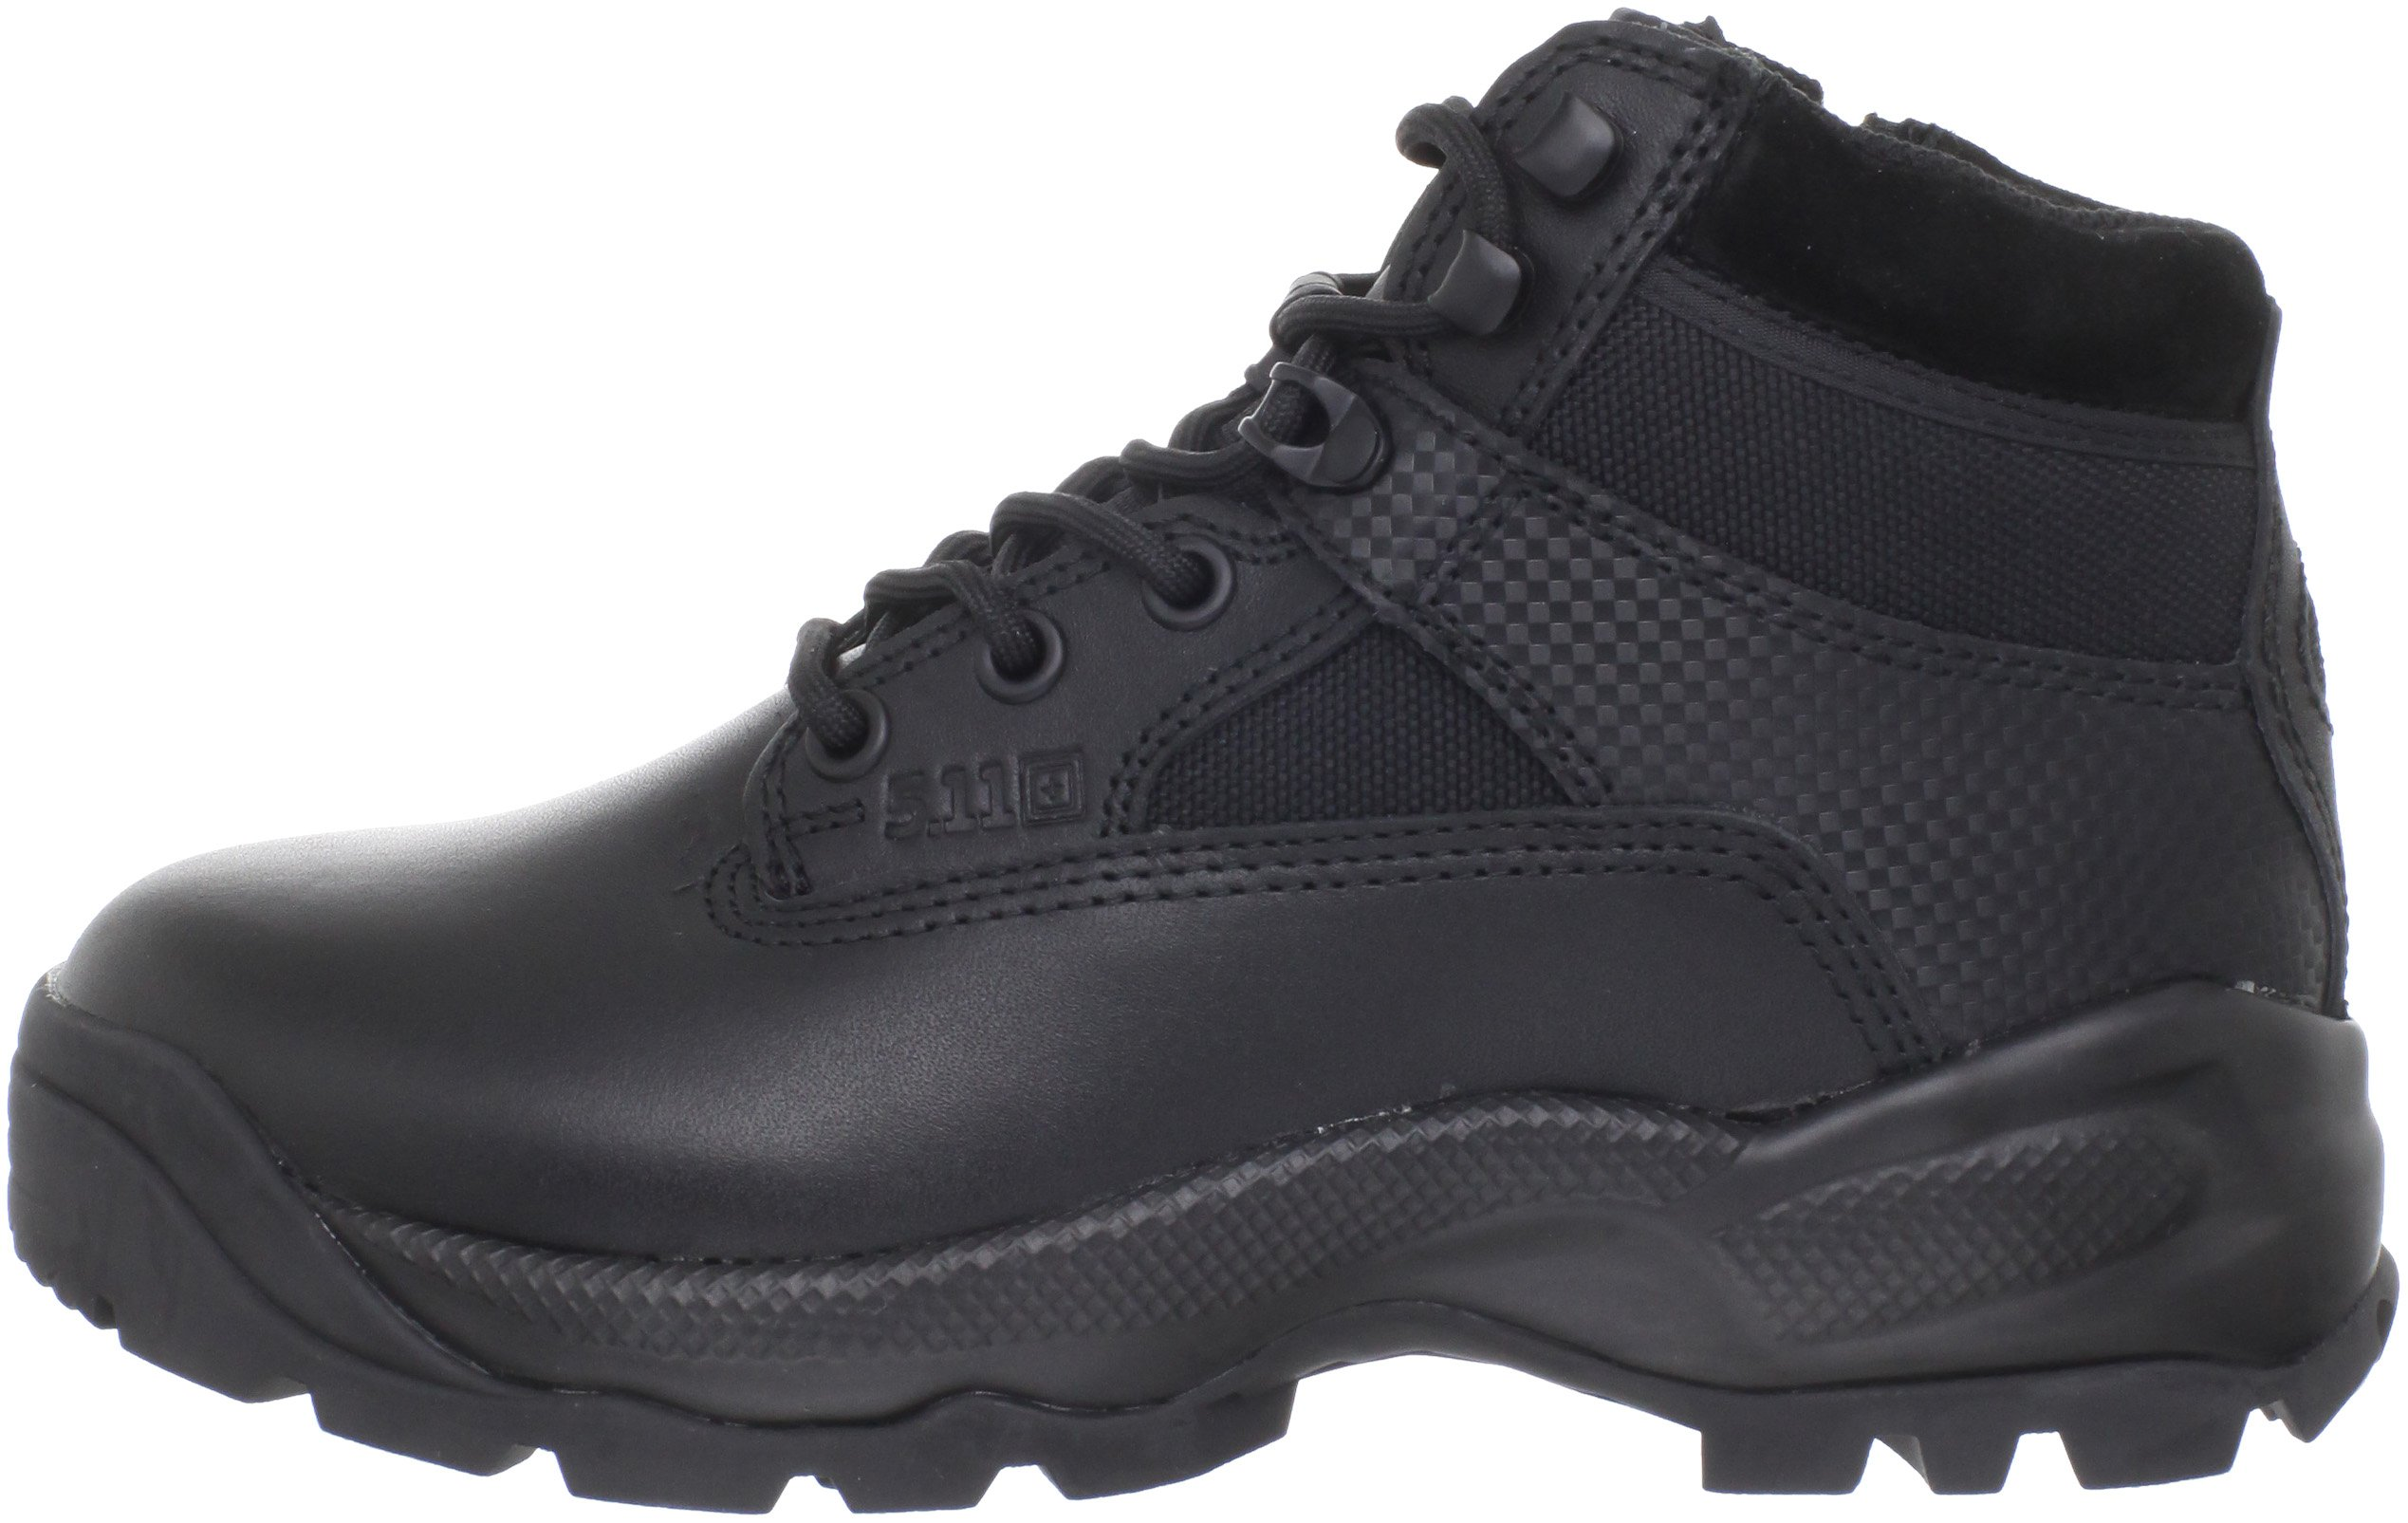 5.11 Women's A.T.A.C. 6'' Side Zip Tactical Boots, Style 12025, Black, 6 R by 5.11 (Image #5)